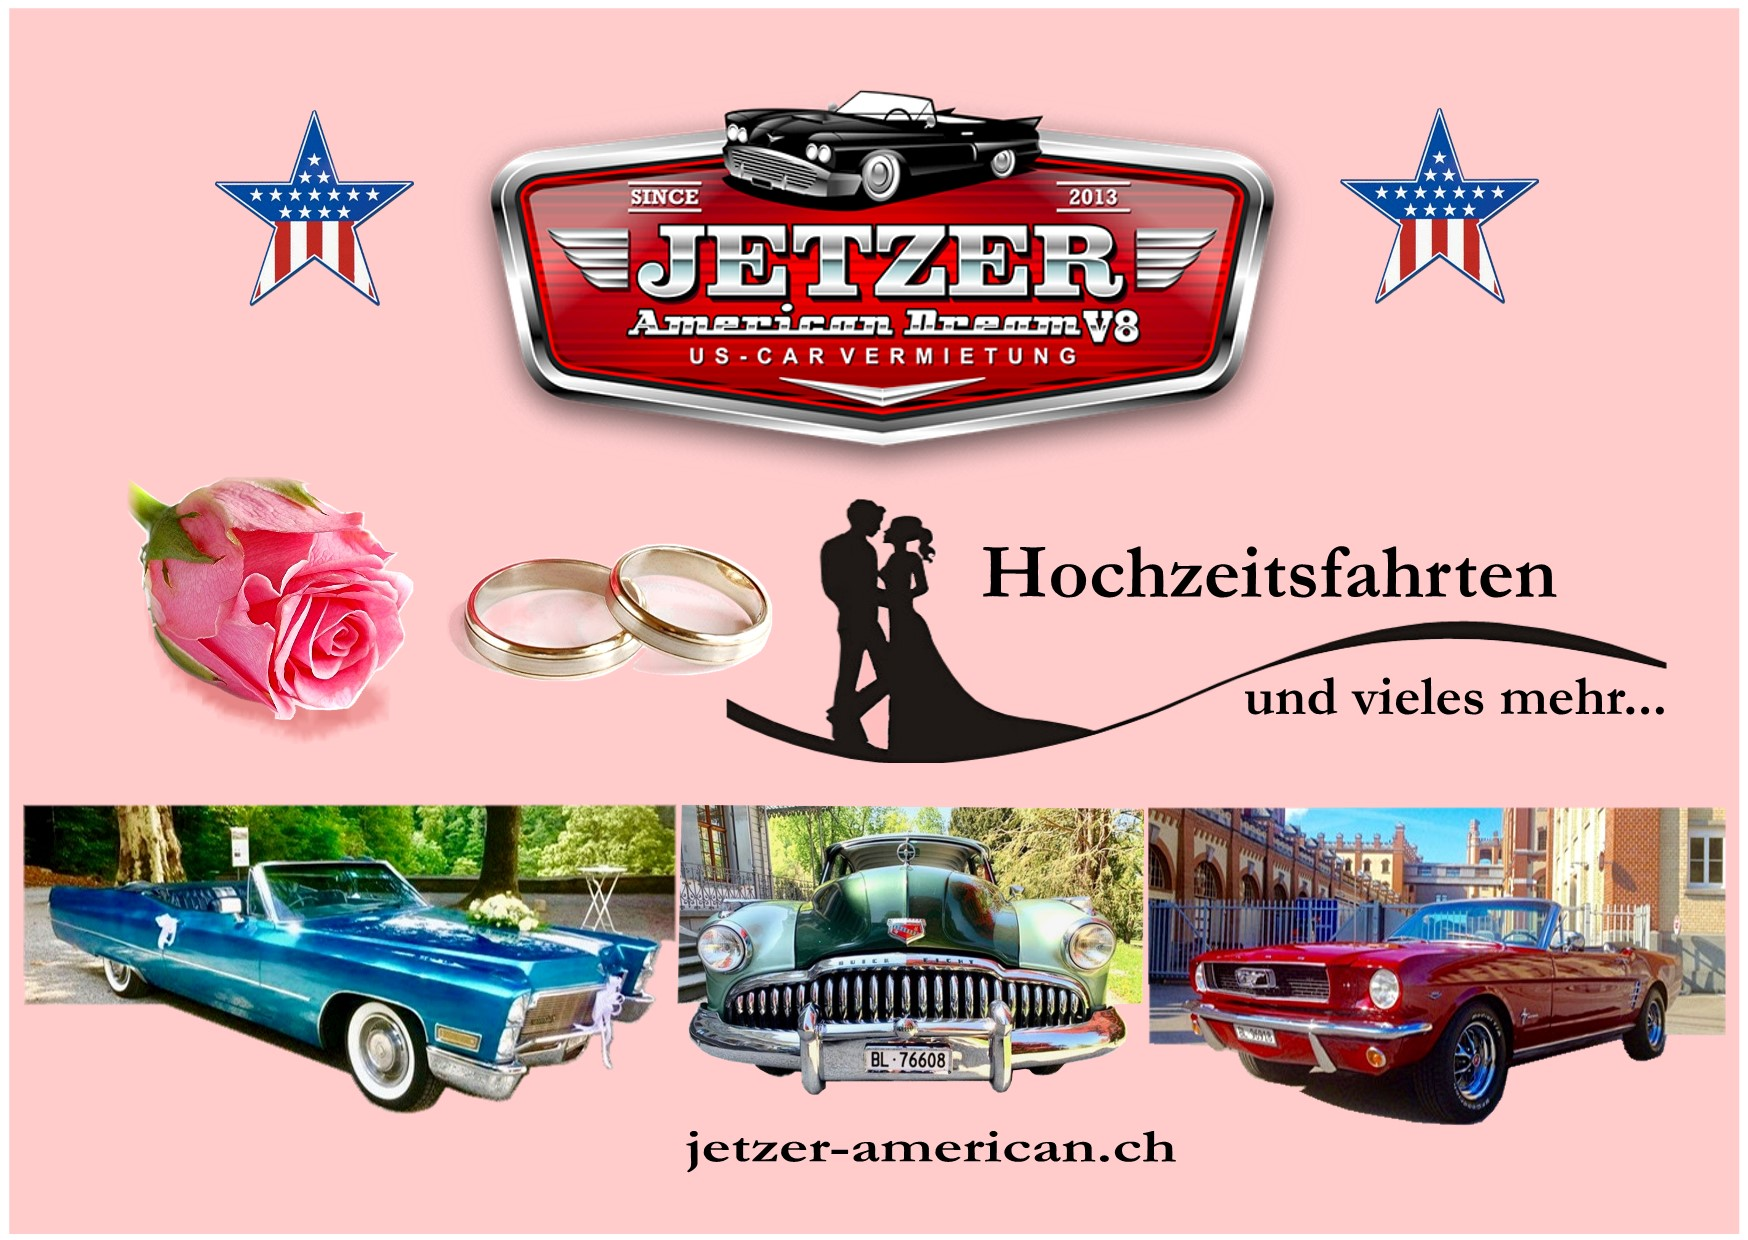 ford mustang oldtimer mieten jetzer american dream v8. Black Bedroom Furniture Sets. Home Design Ideas